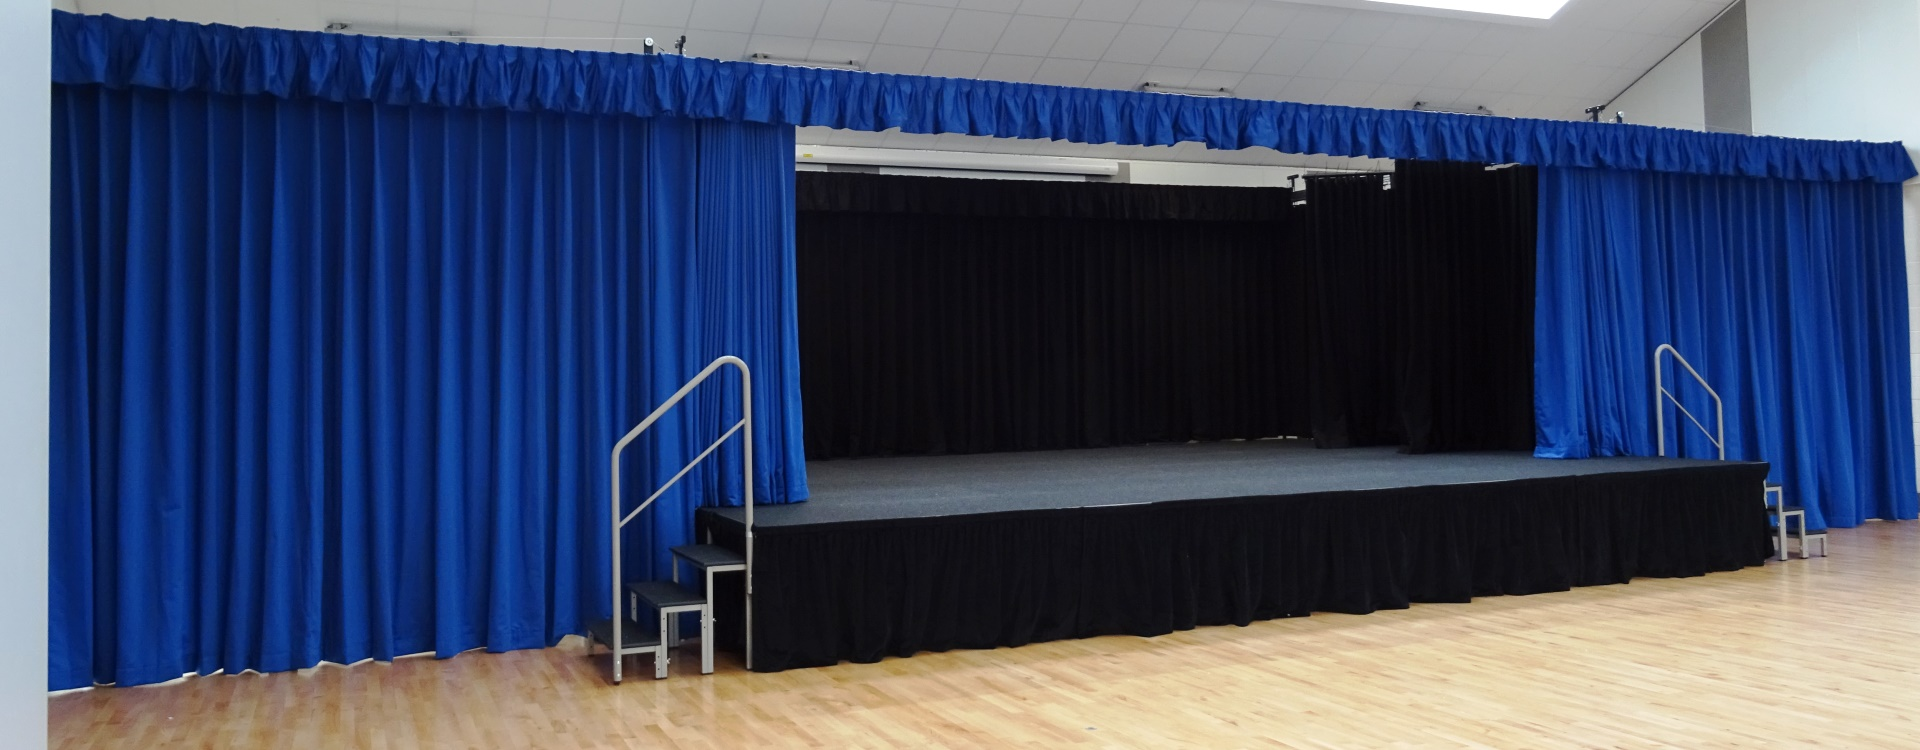 School stage